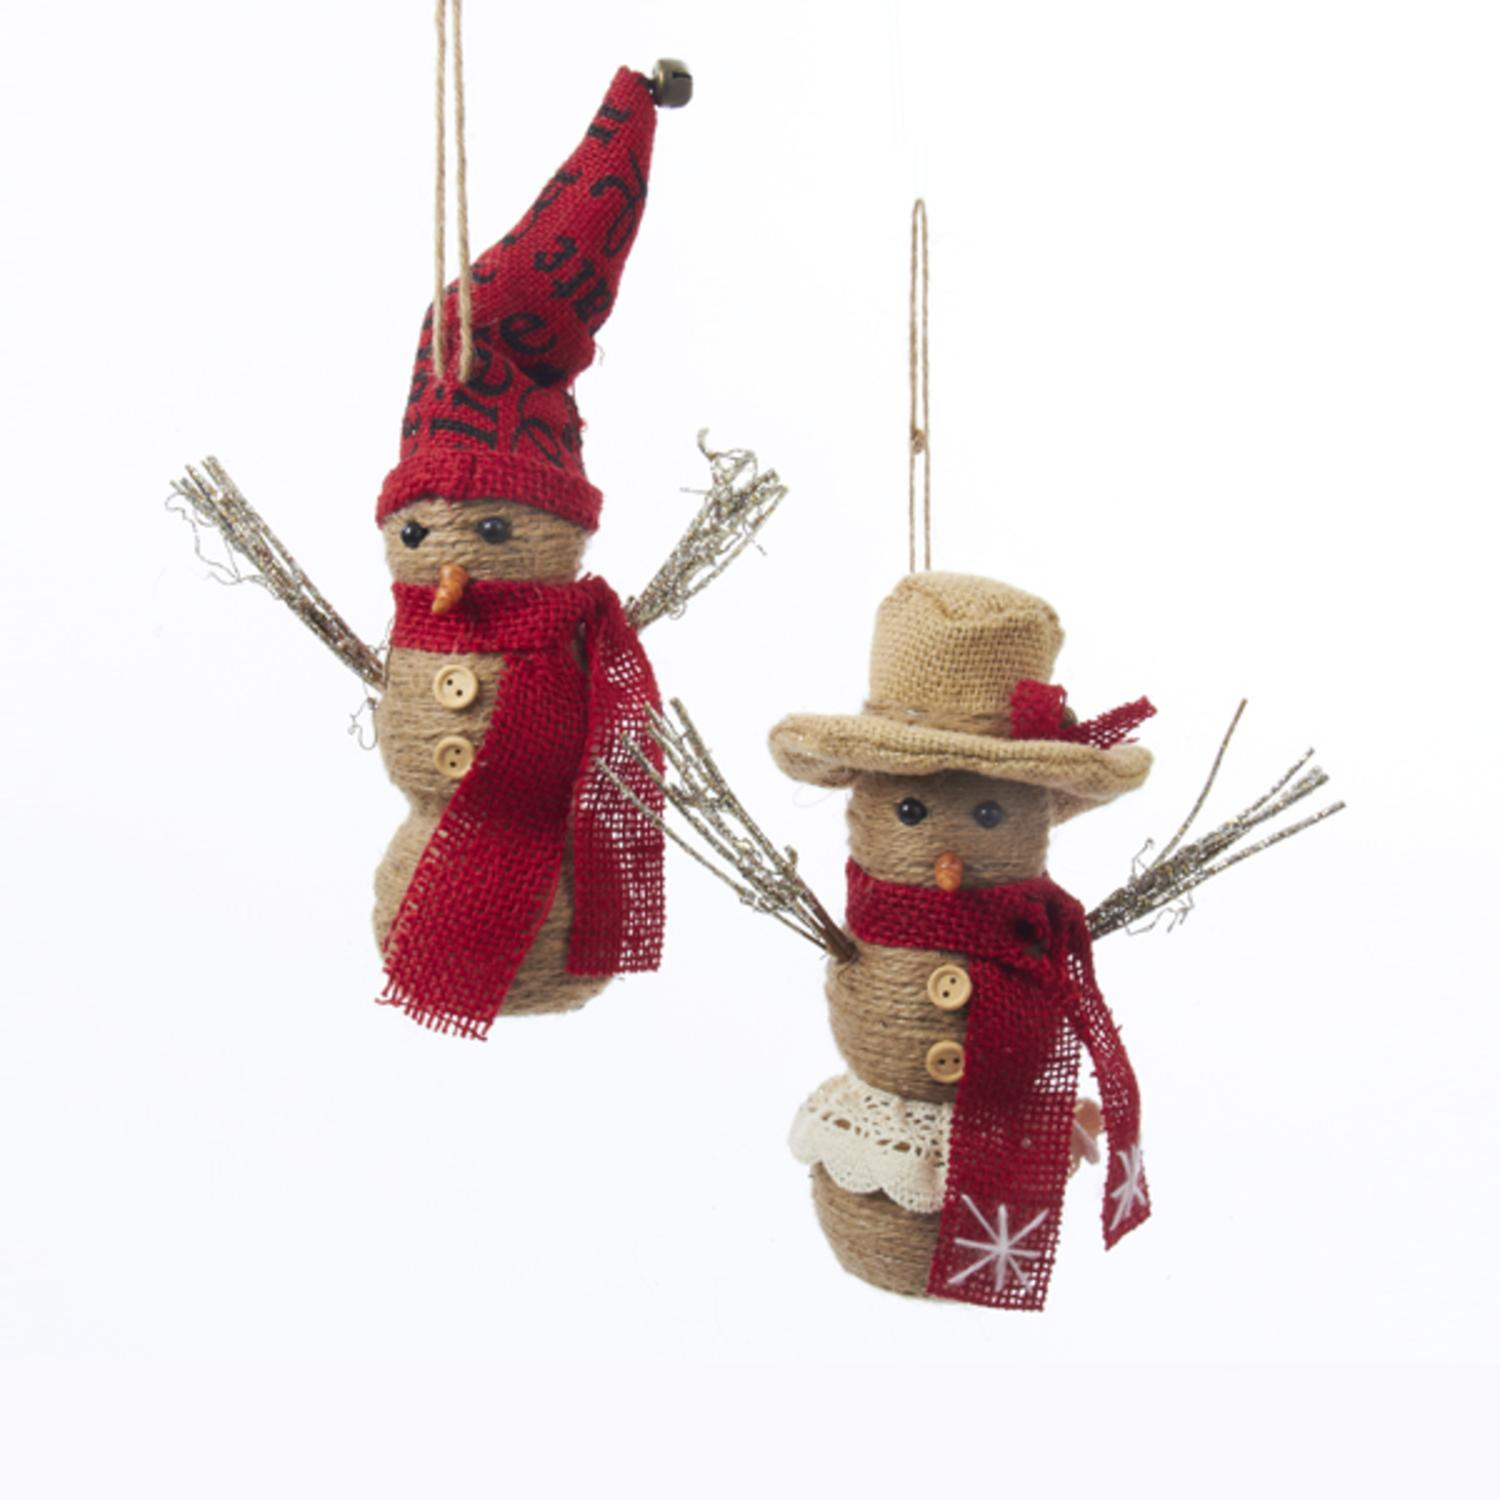 Pack of 6 Country Heritage Burlap Snowman Christmas Figure Ornaments 7.5""